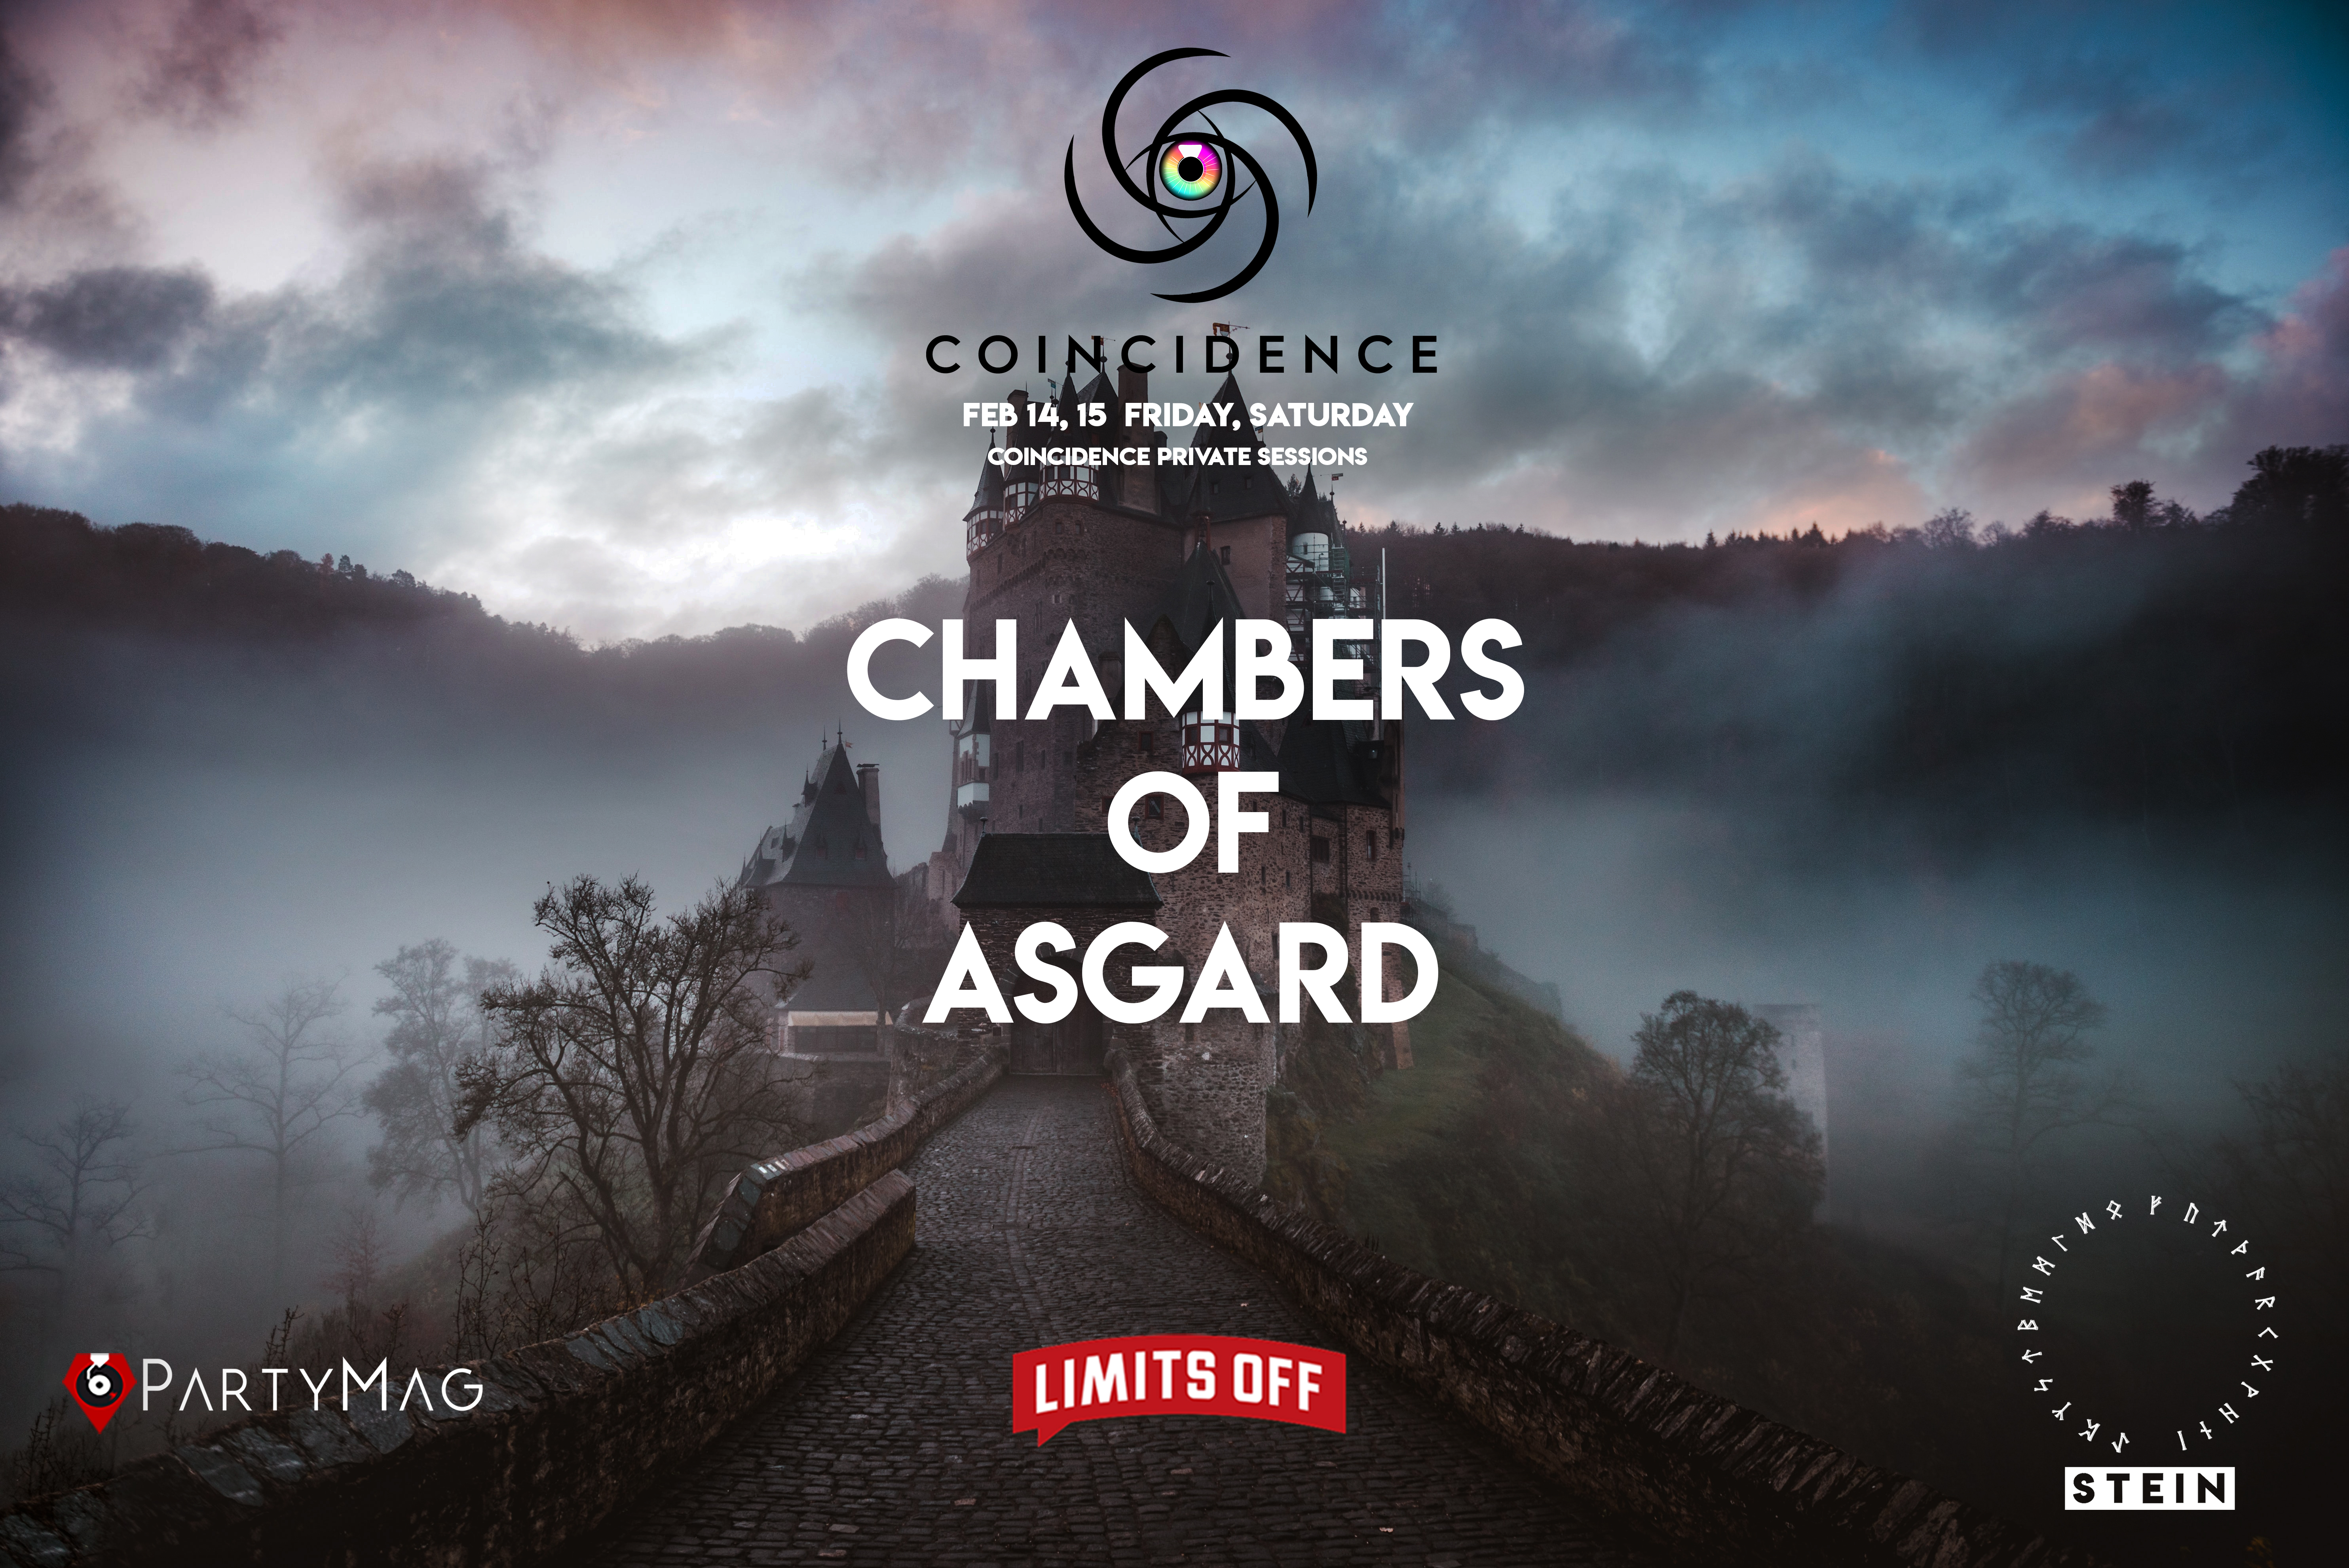 Coincidence Chambers of Asgard